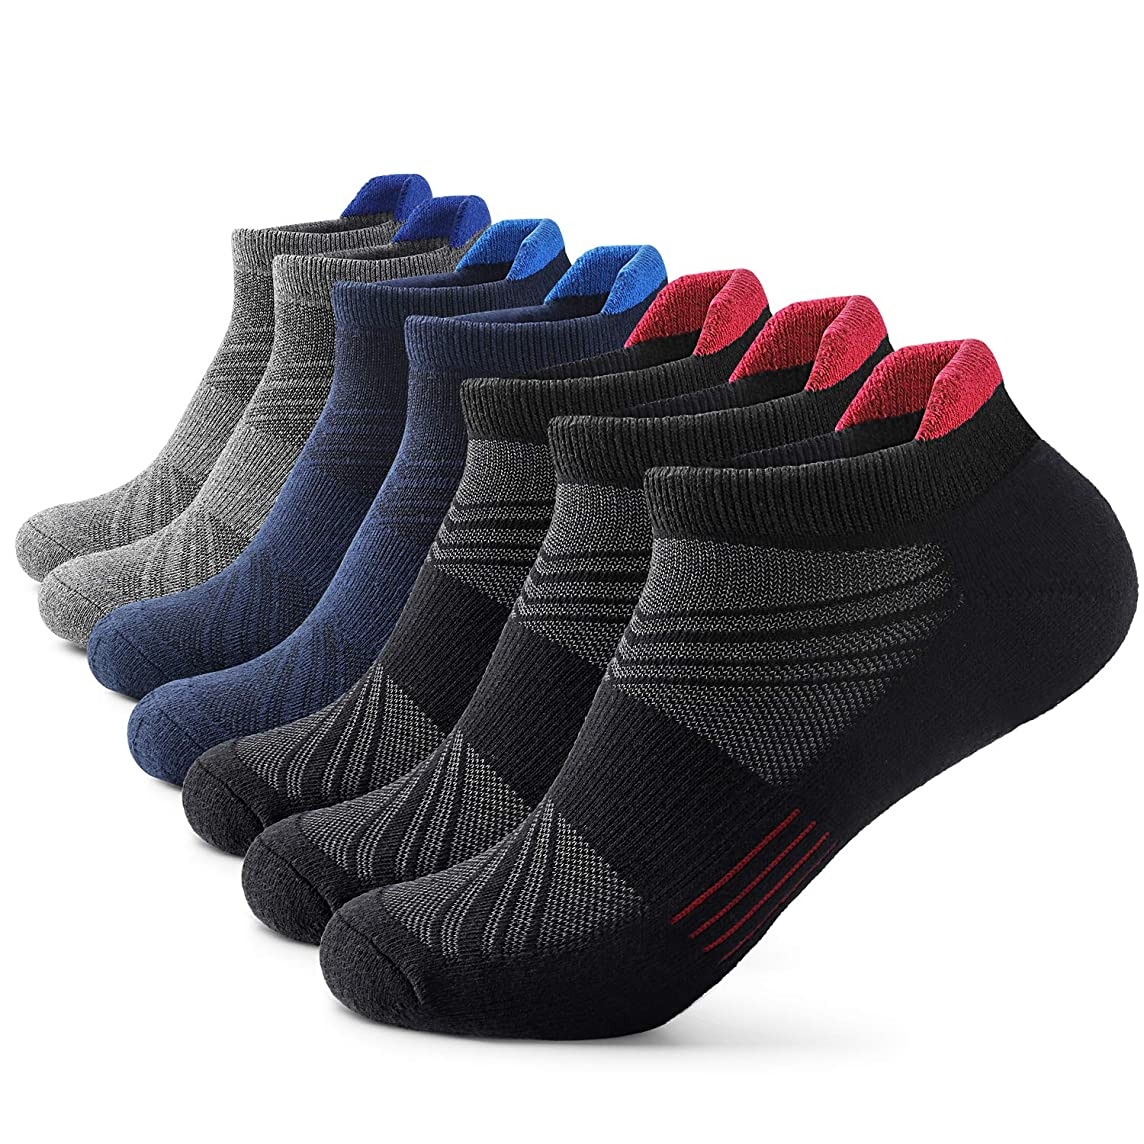 Mens Ankle Athletic Socks Men's Running Sports 3/5/7 pairs Socks Comfort Cushioned Running Tab Socks